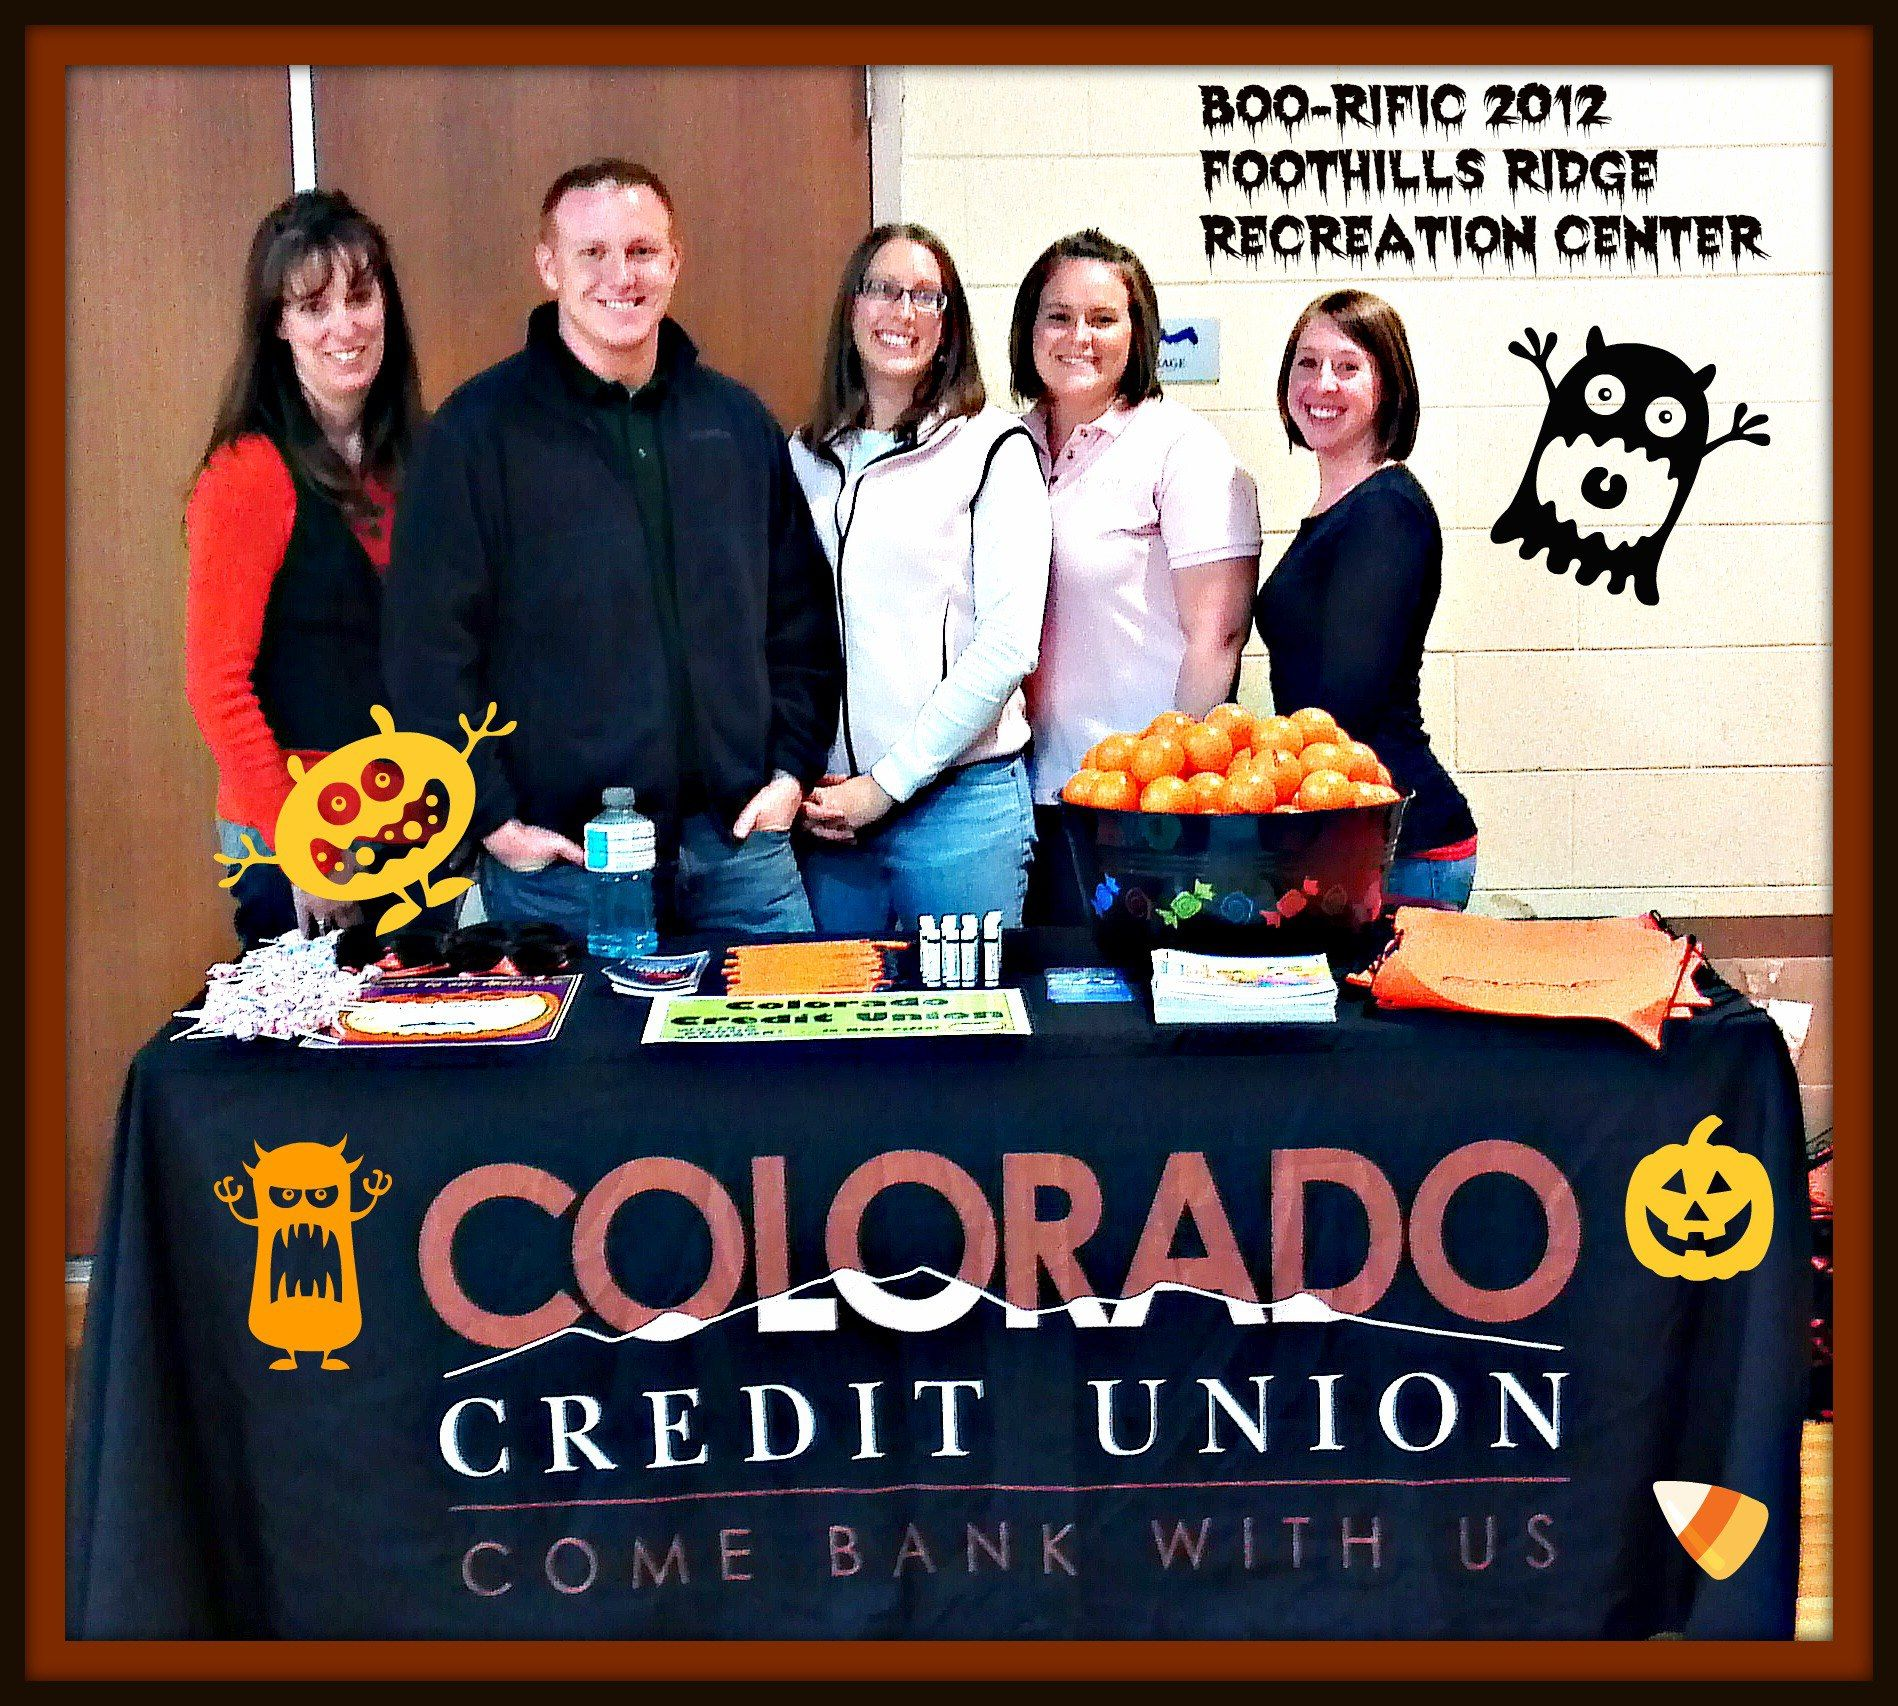 Colorado Credit Union was a proud sponsor of the FoothillsRidge Recreation Center - BOO-RIFIC Event Friday, October 26th!